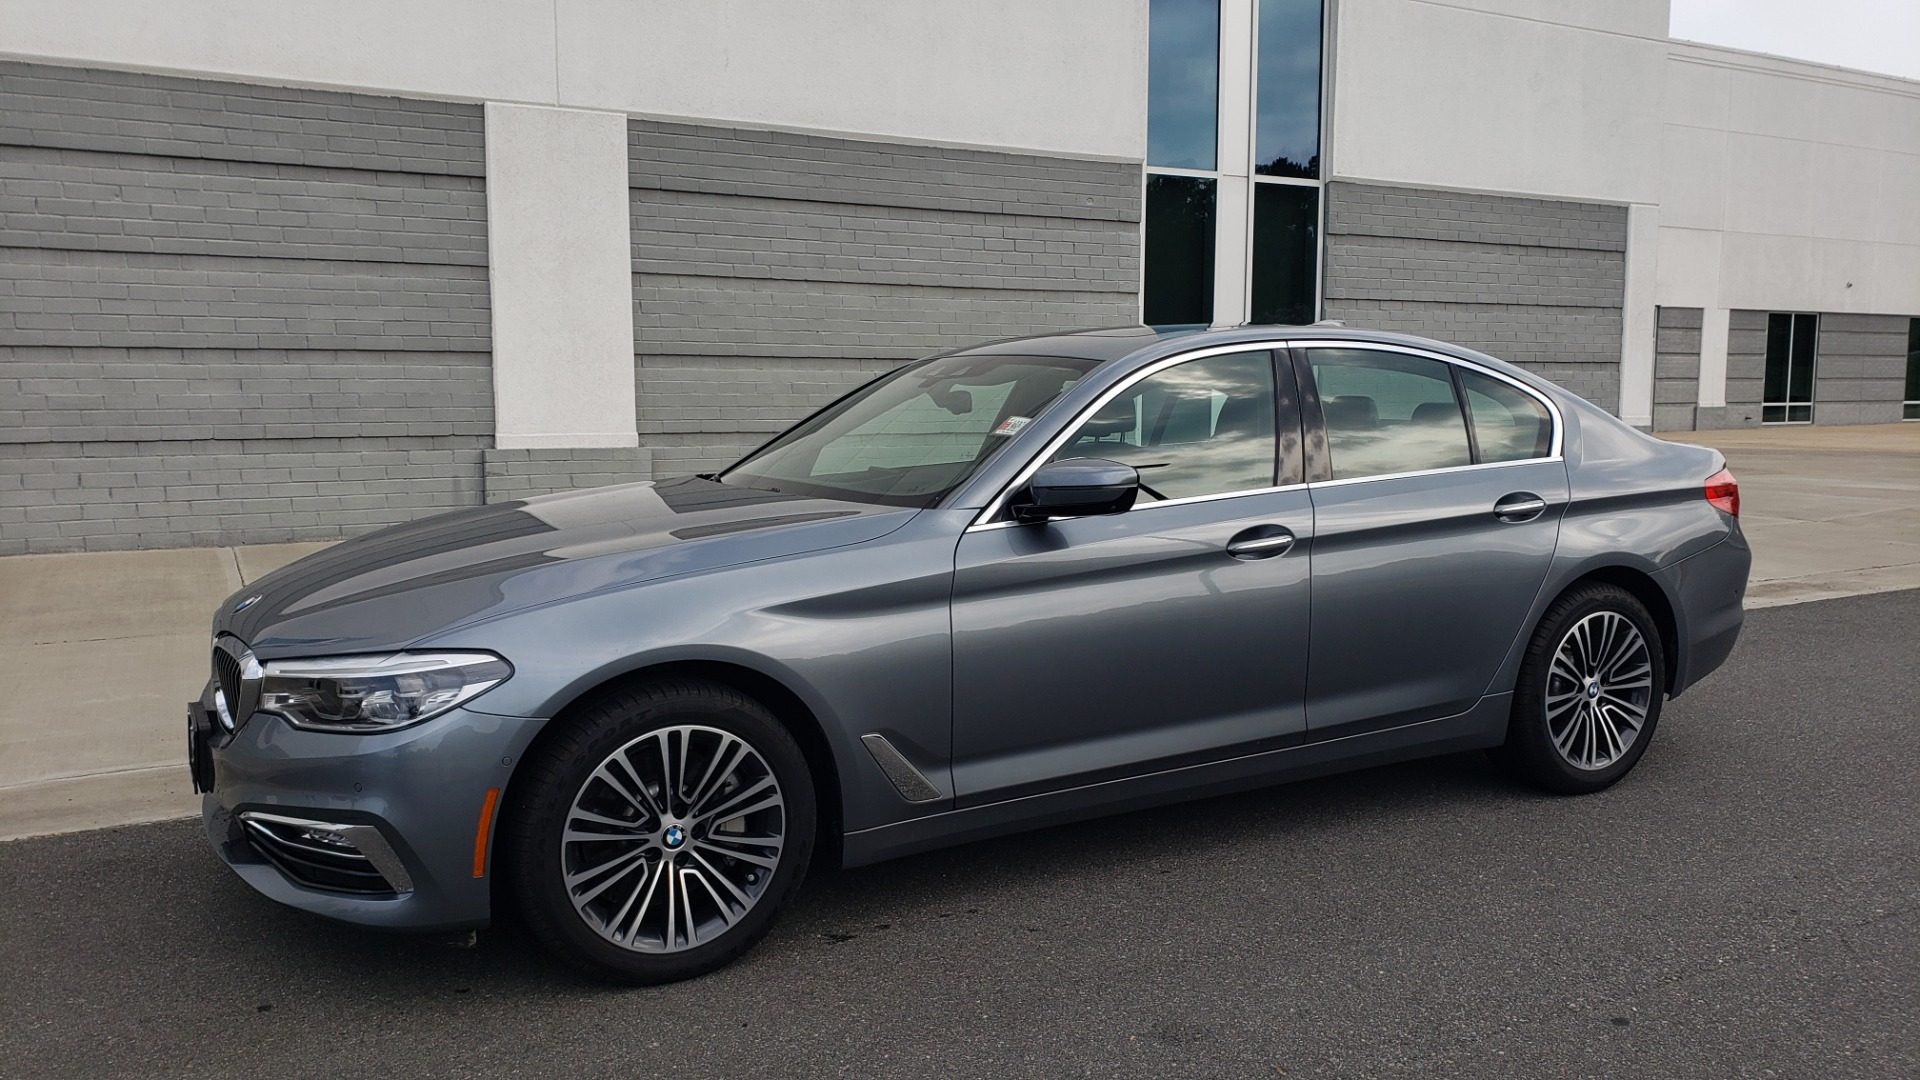 Used 2018 BMW 5 SERIES 540I XDRIVE PREMIUM / EXECUTIVE / LUXURY / H/K SND / REMOTE CONTROL PARKING for sale $40,995 at Formula Imports in Charlotte NC 28227 4